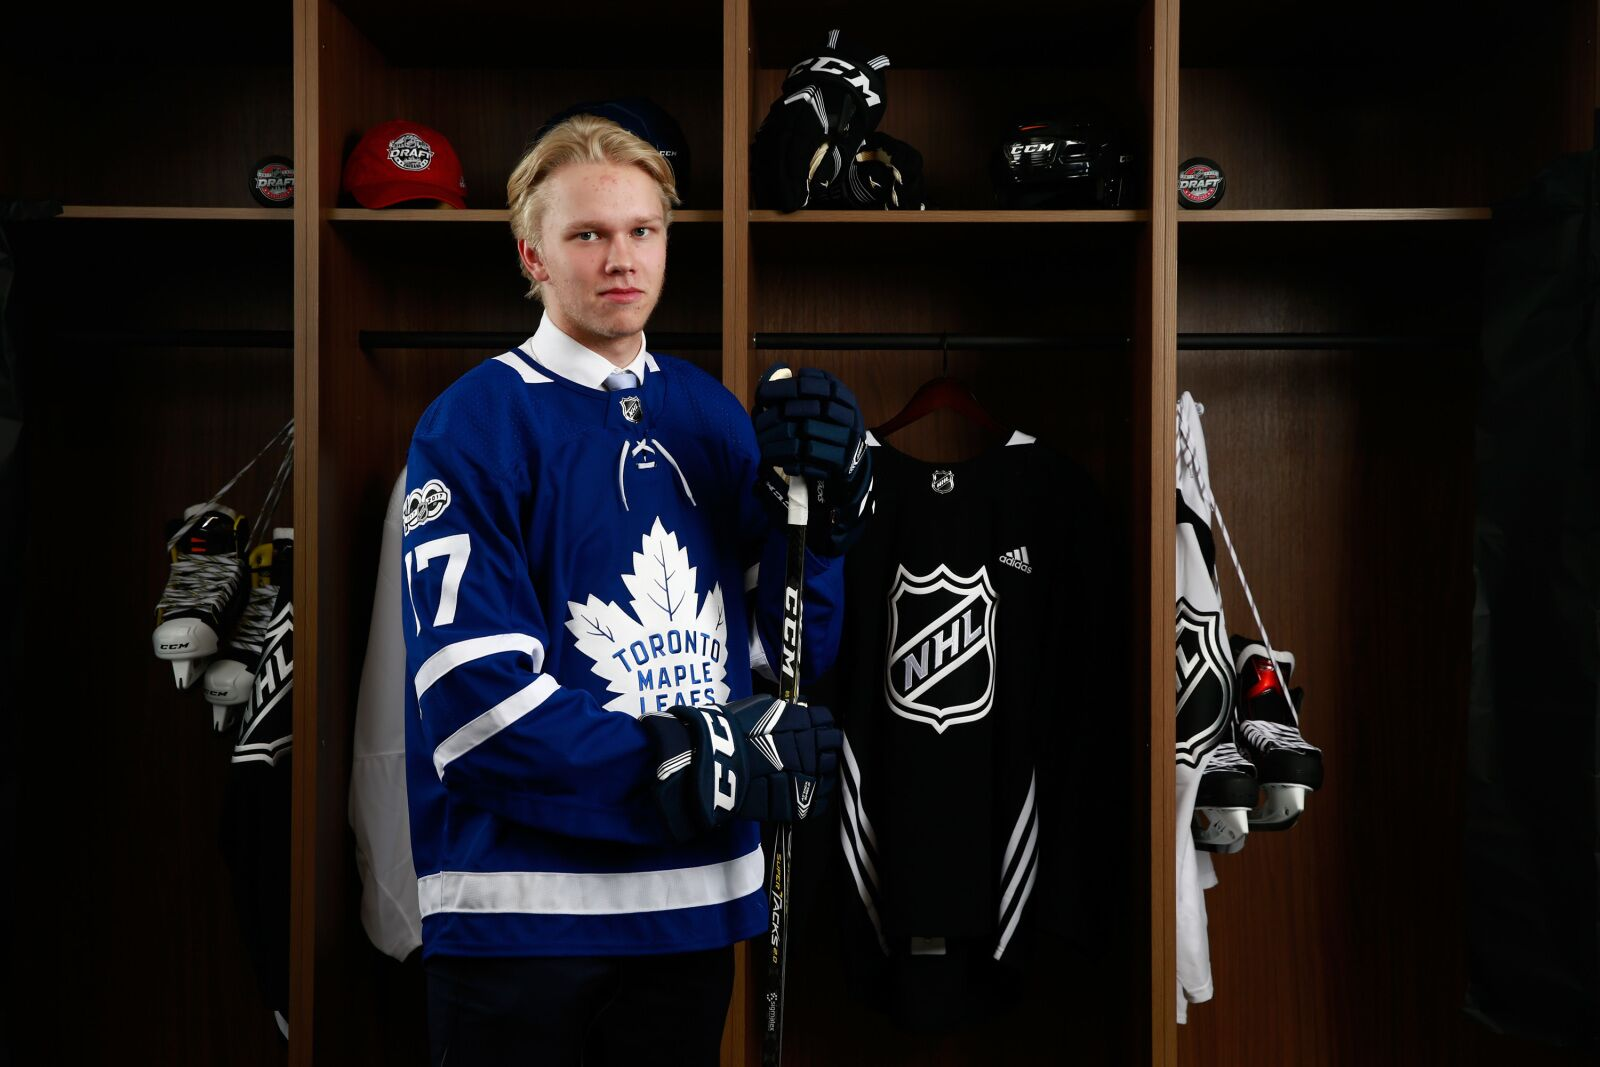 CHICAGO, IL - JUNE 24: Eemeli Rasanen, 59th overall pick of the Toronto Maple Leafs, poses for a portrait during the 2017 NHL Draft at United Center on June 24, 2017 in Chicago, Illinois. (Photo by Jeff Vinnick/NHLI via Getty Images)